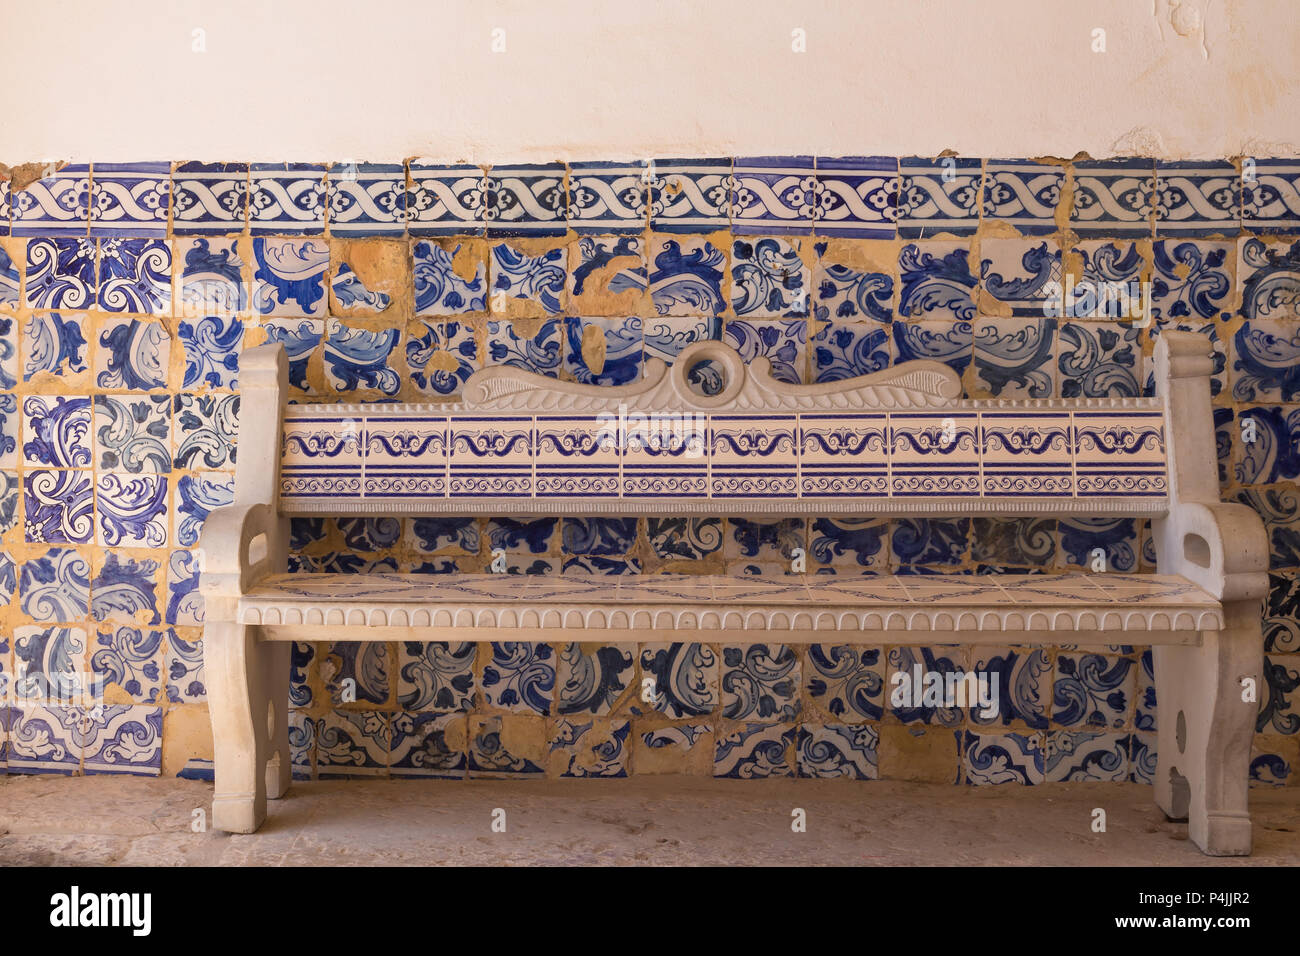 Bench and a wall with traditional ceramic azulejos, tiles with floral motives. Church of Nossa Senhora da Rocha, Algarve, Portugal. - Stock Image